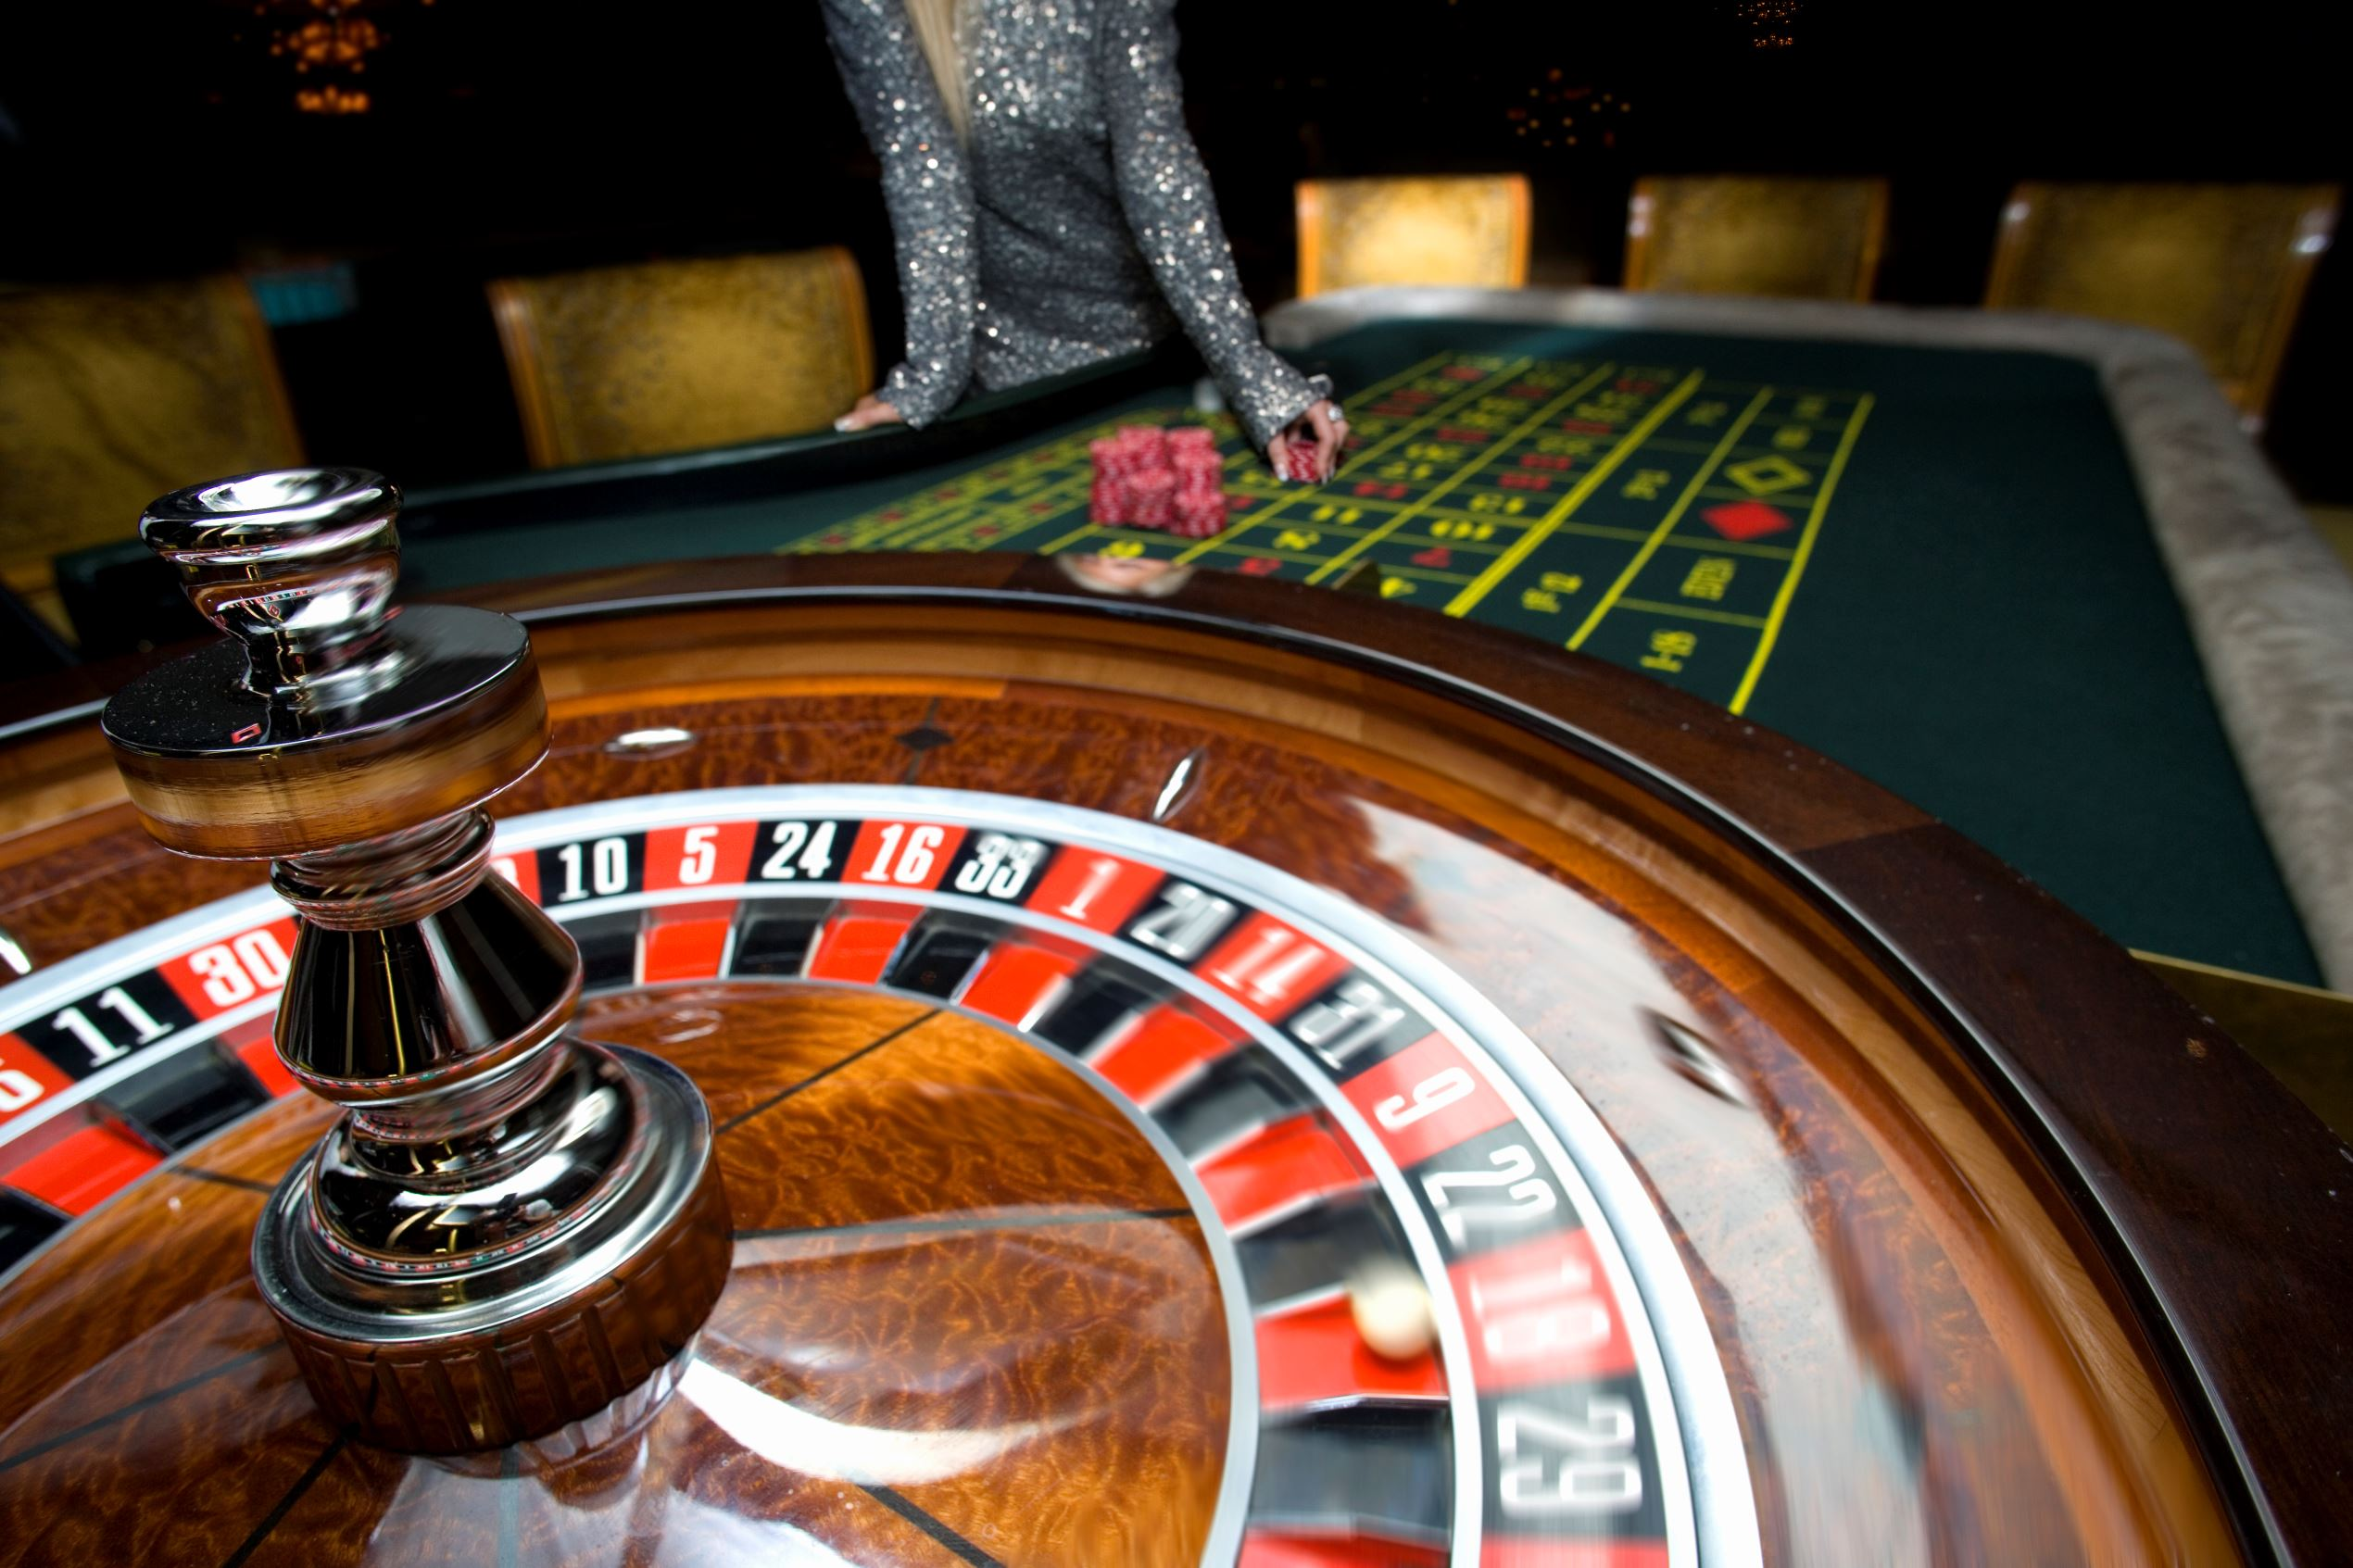 Casinos See 39 Percent Plunge In Gaming Win